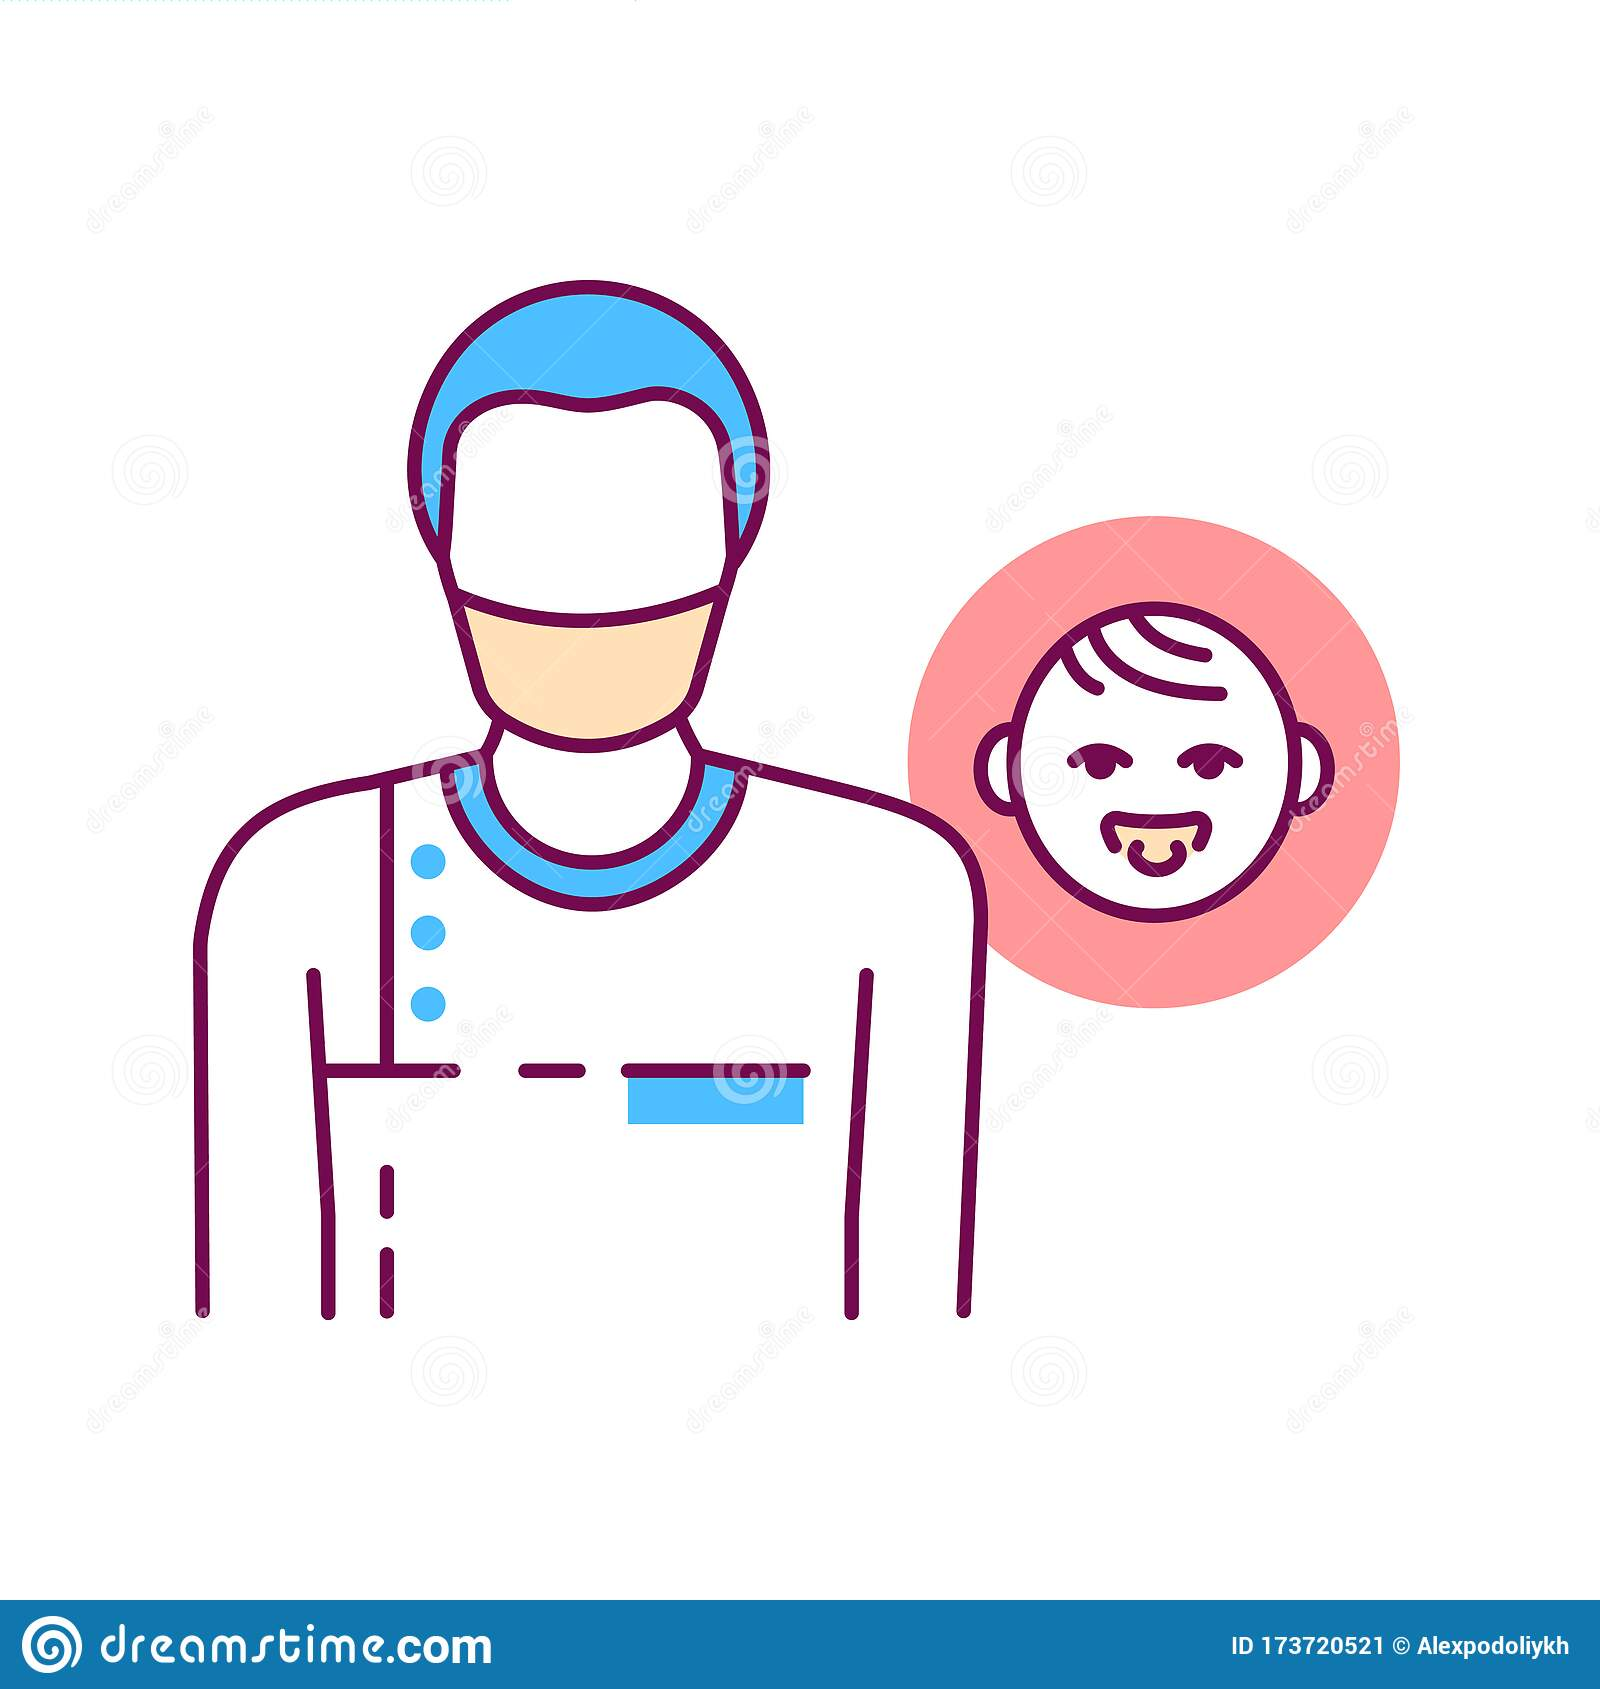 Pediatric Surgeon Color Line Icon Doctor For Children Medical Service And Treatment Children Pictogram For Web Page Mobile App Stock Vector Illustration Of Application Hospital 173720521